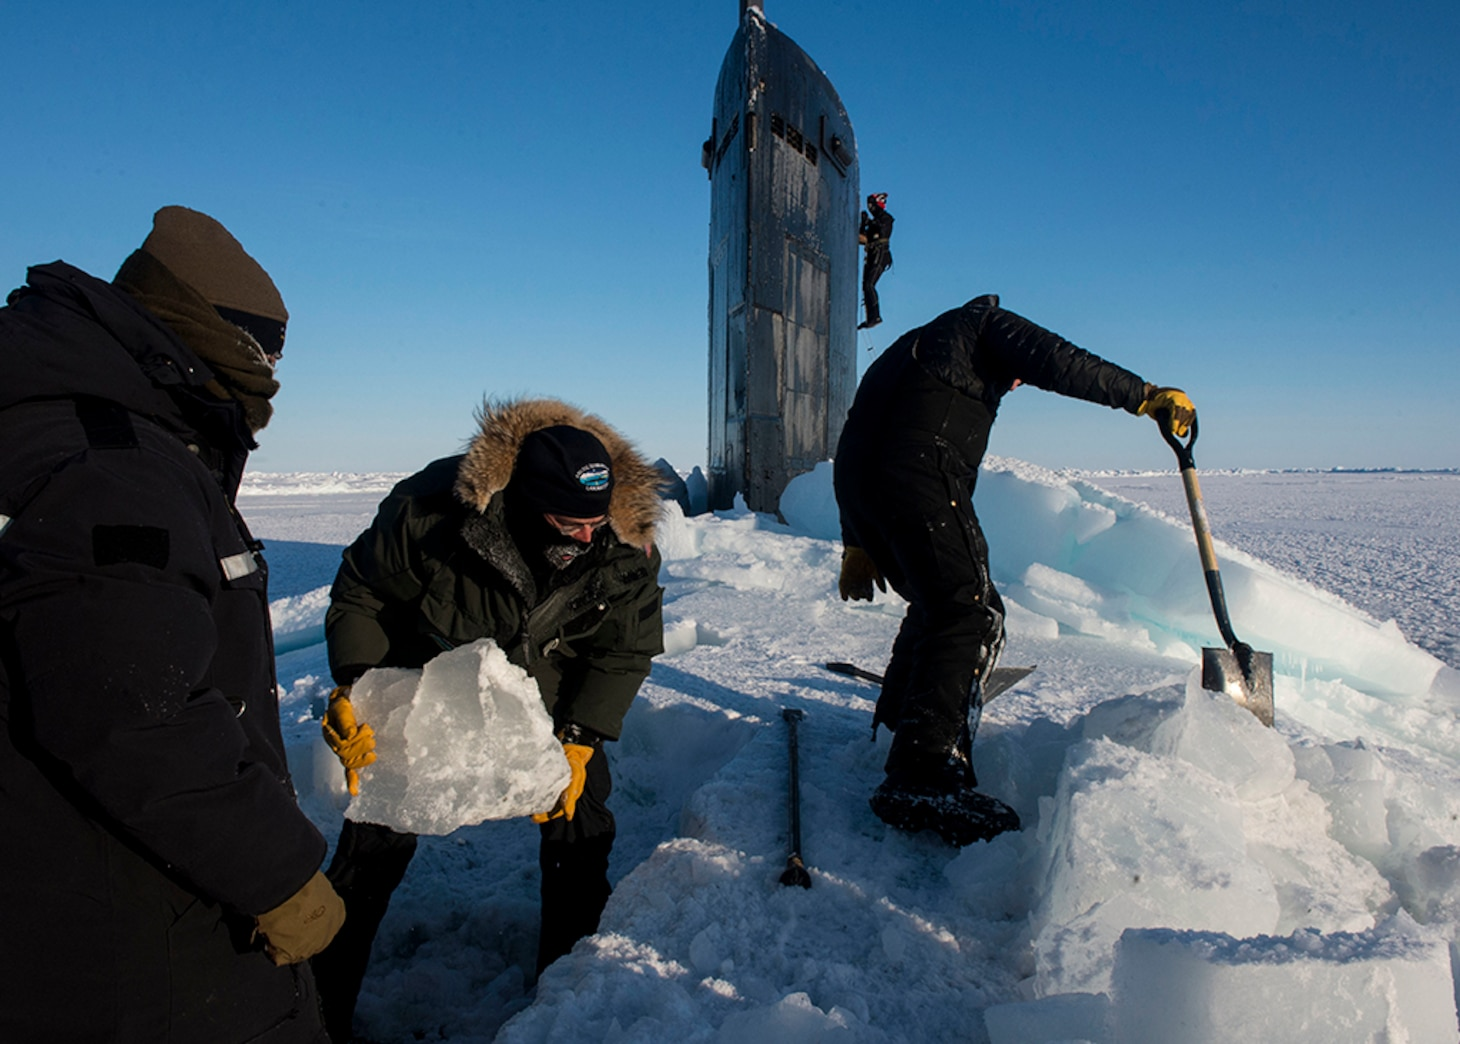 ARCTIC CIRCLE (March 14, 2016) Sailors and civilians, assigned to Arctic Submarine Lab, clear the ice from the hatch of USS Hampton (SSN 767) during Ice Exercise (ICEX) 2016. ICEX 2016 is a five-week exercise designed to research, test, and evaluate operational capabilities in the region. ICEX 2016 allows the U.S. Navy to assess operational readiness in the Arctic, increase experience in the region, advance understanding of the Arctic environment, and develop partnerships and collaborative efforts.